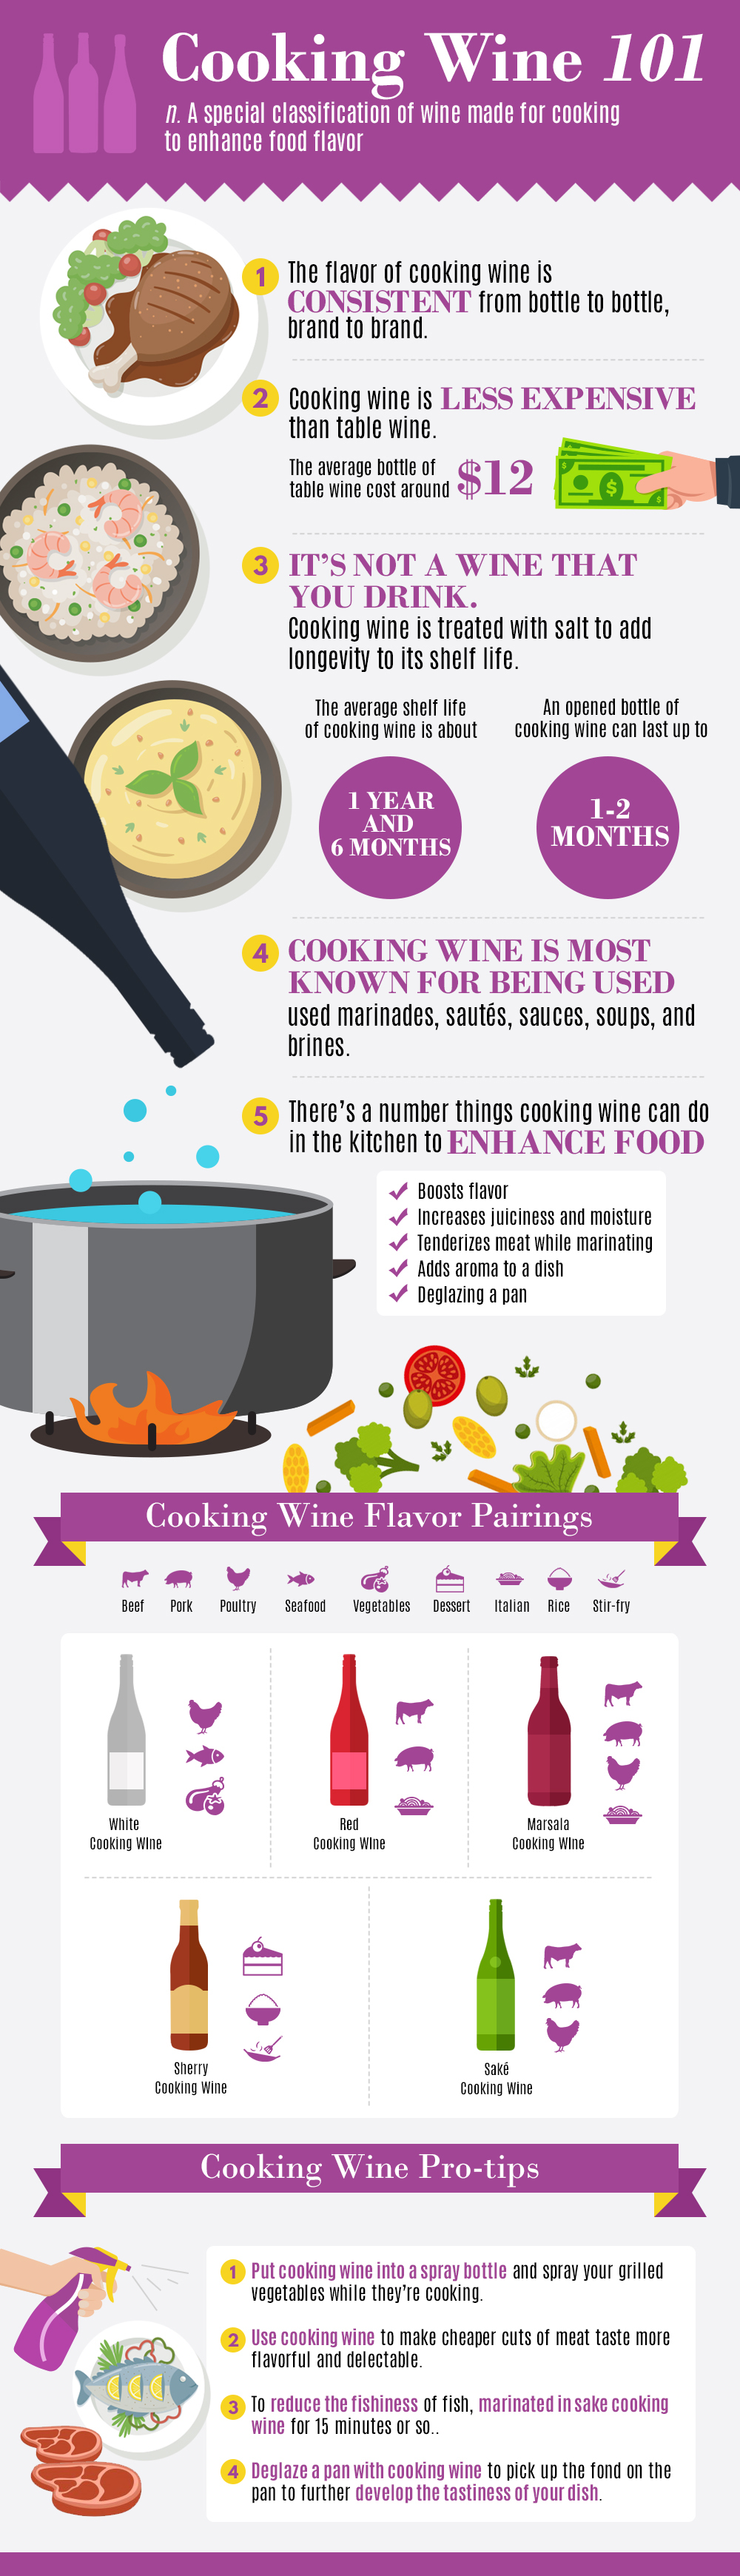 Raising a toast to Cooking Wine - Infographic